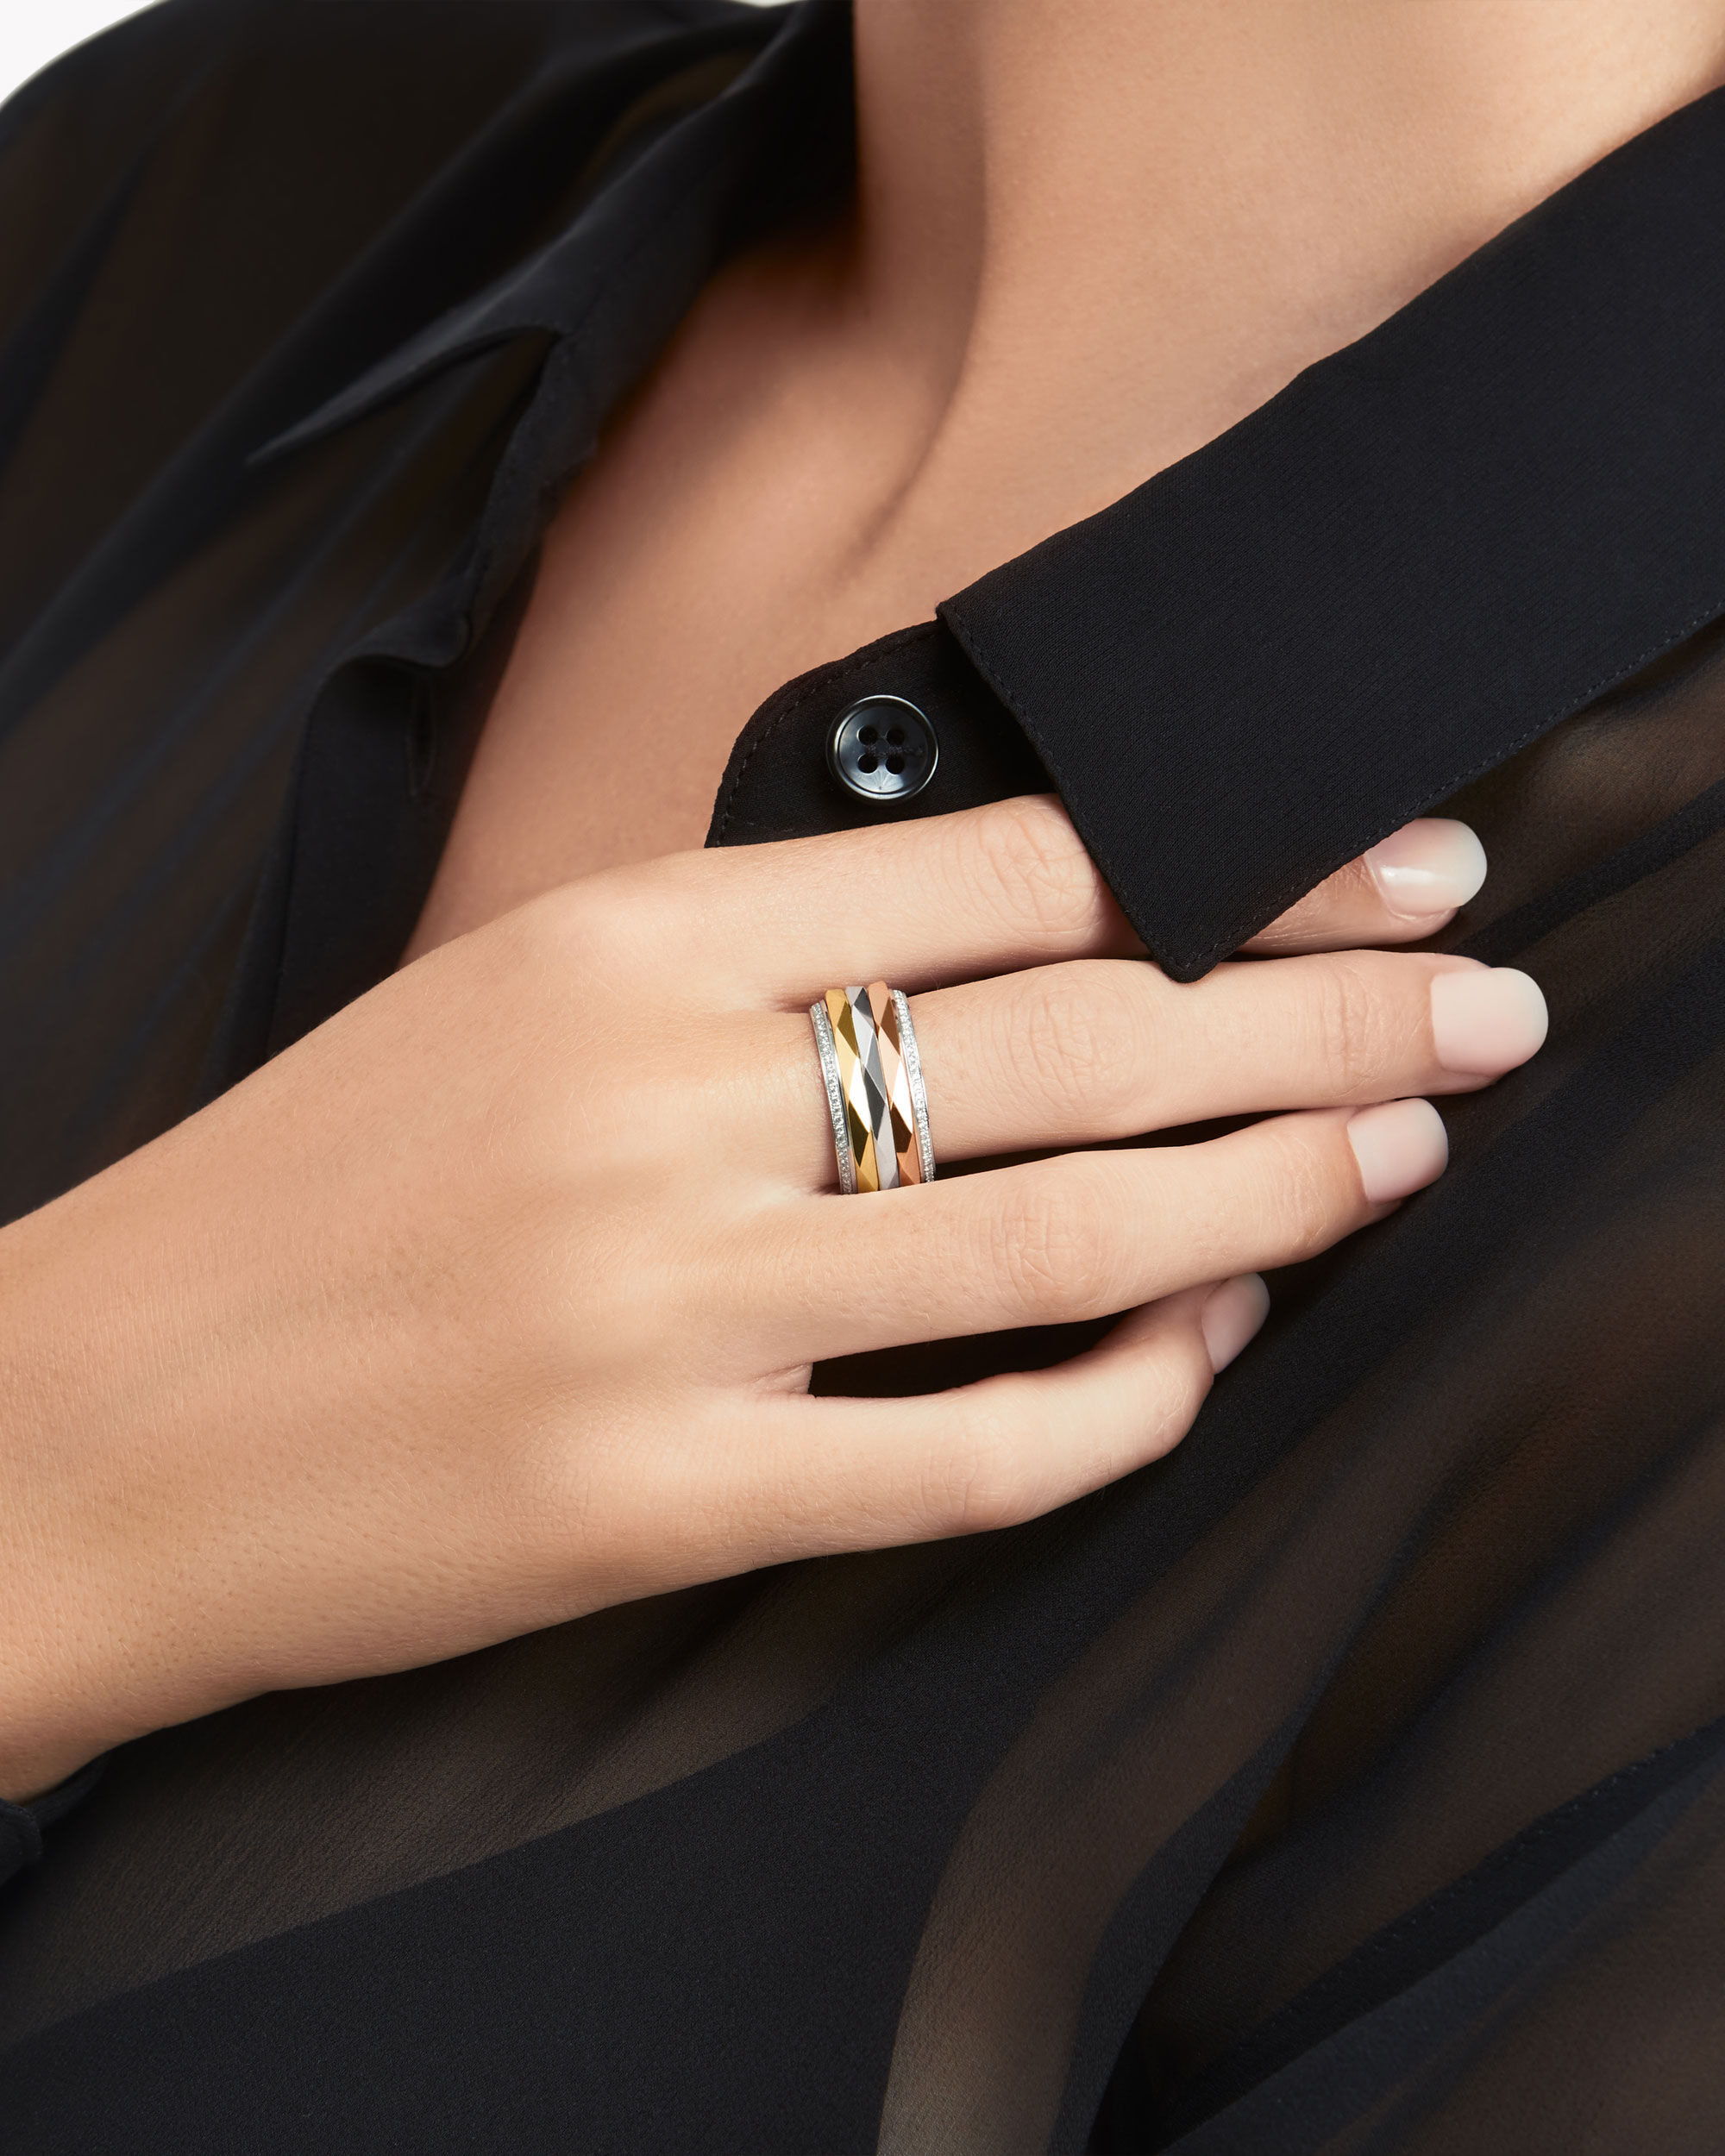 Model wear the Graff jewellery collection diamond ring